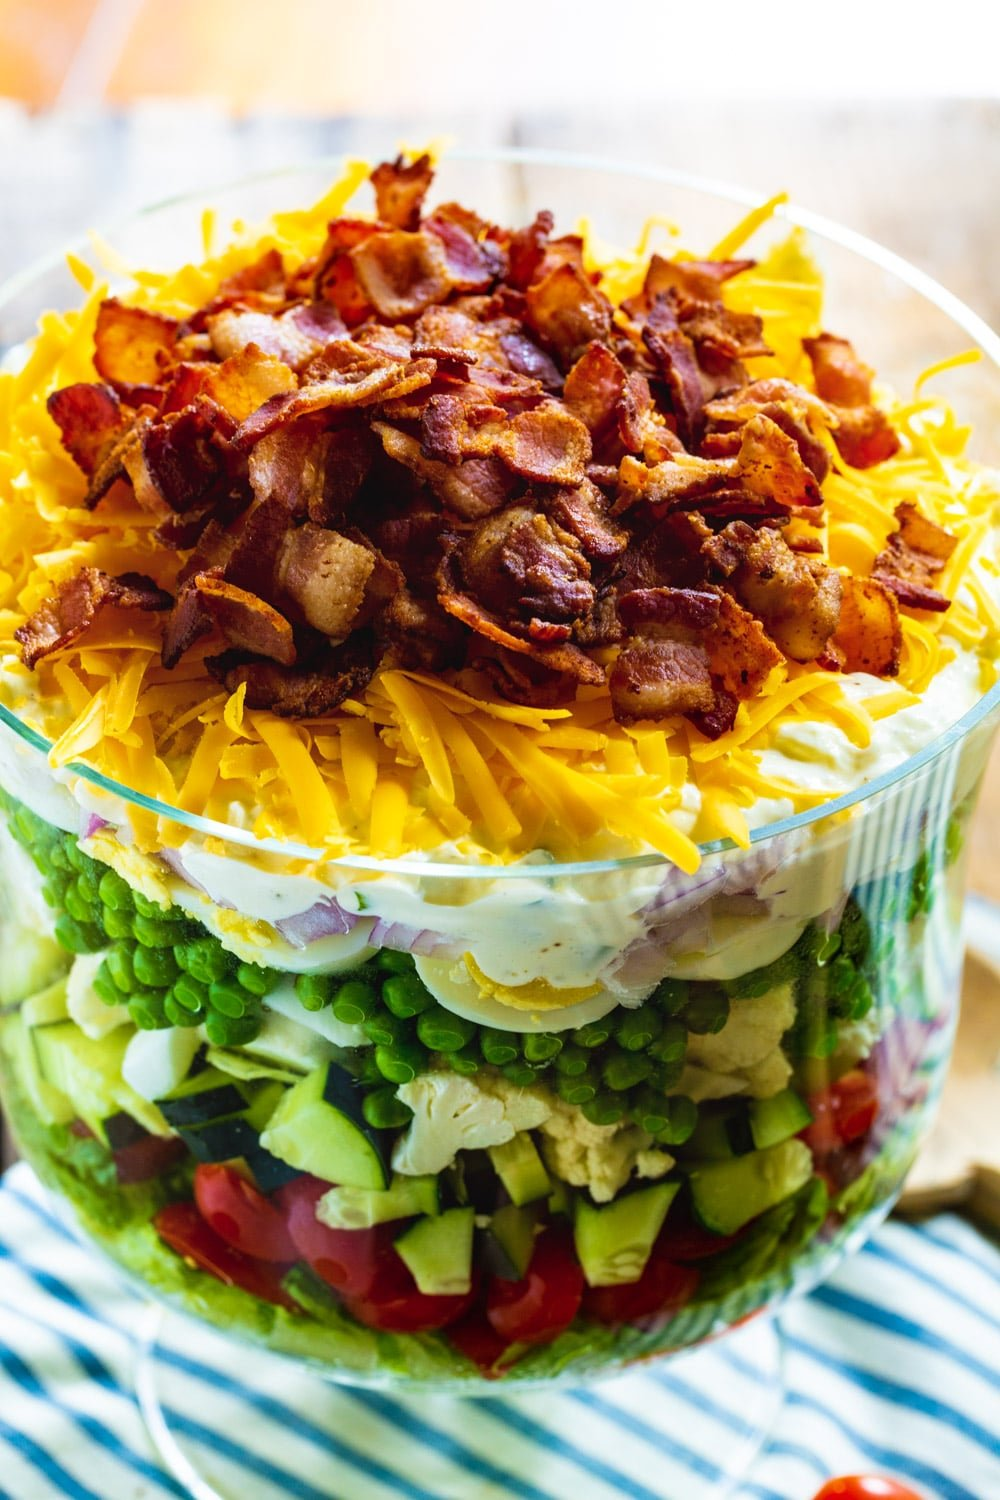 Layered Salad topped with cheese and bacon in a trifle dish.